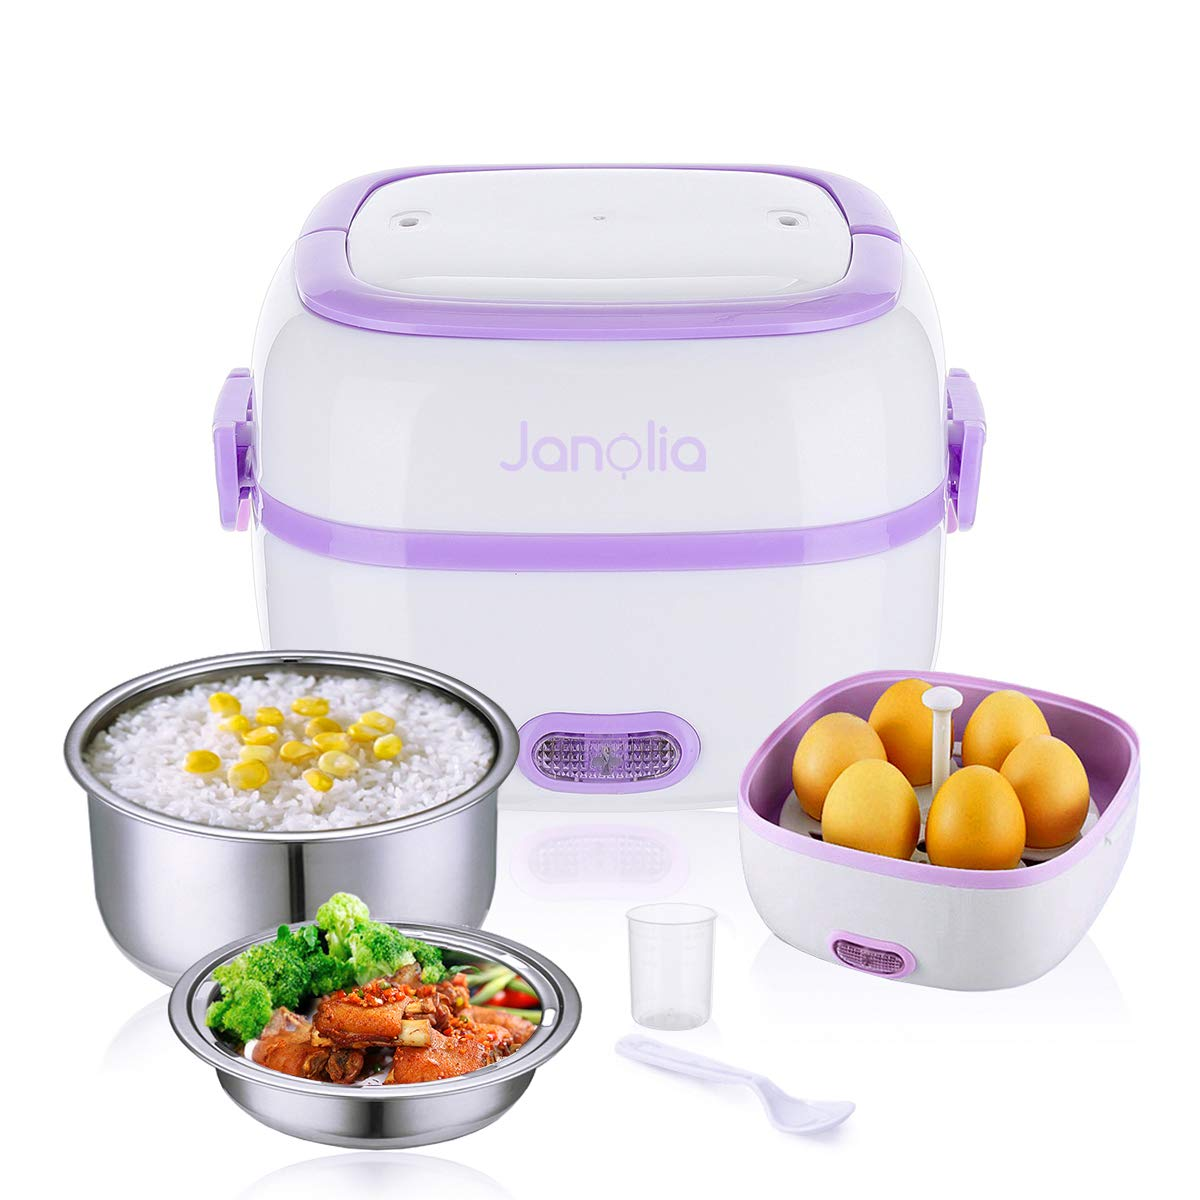 Janolia Electric Lunch Box, Portable Food Lunch Heater Mini Rice Steamer Pot with Removable Stainless Steel Container, Food Grade Material Specification